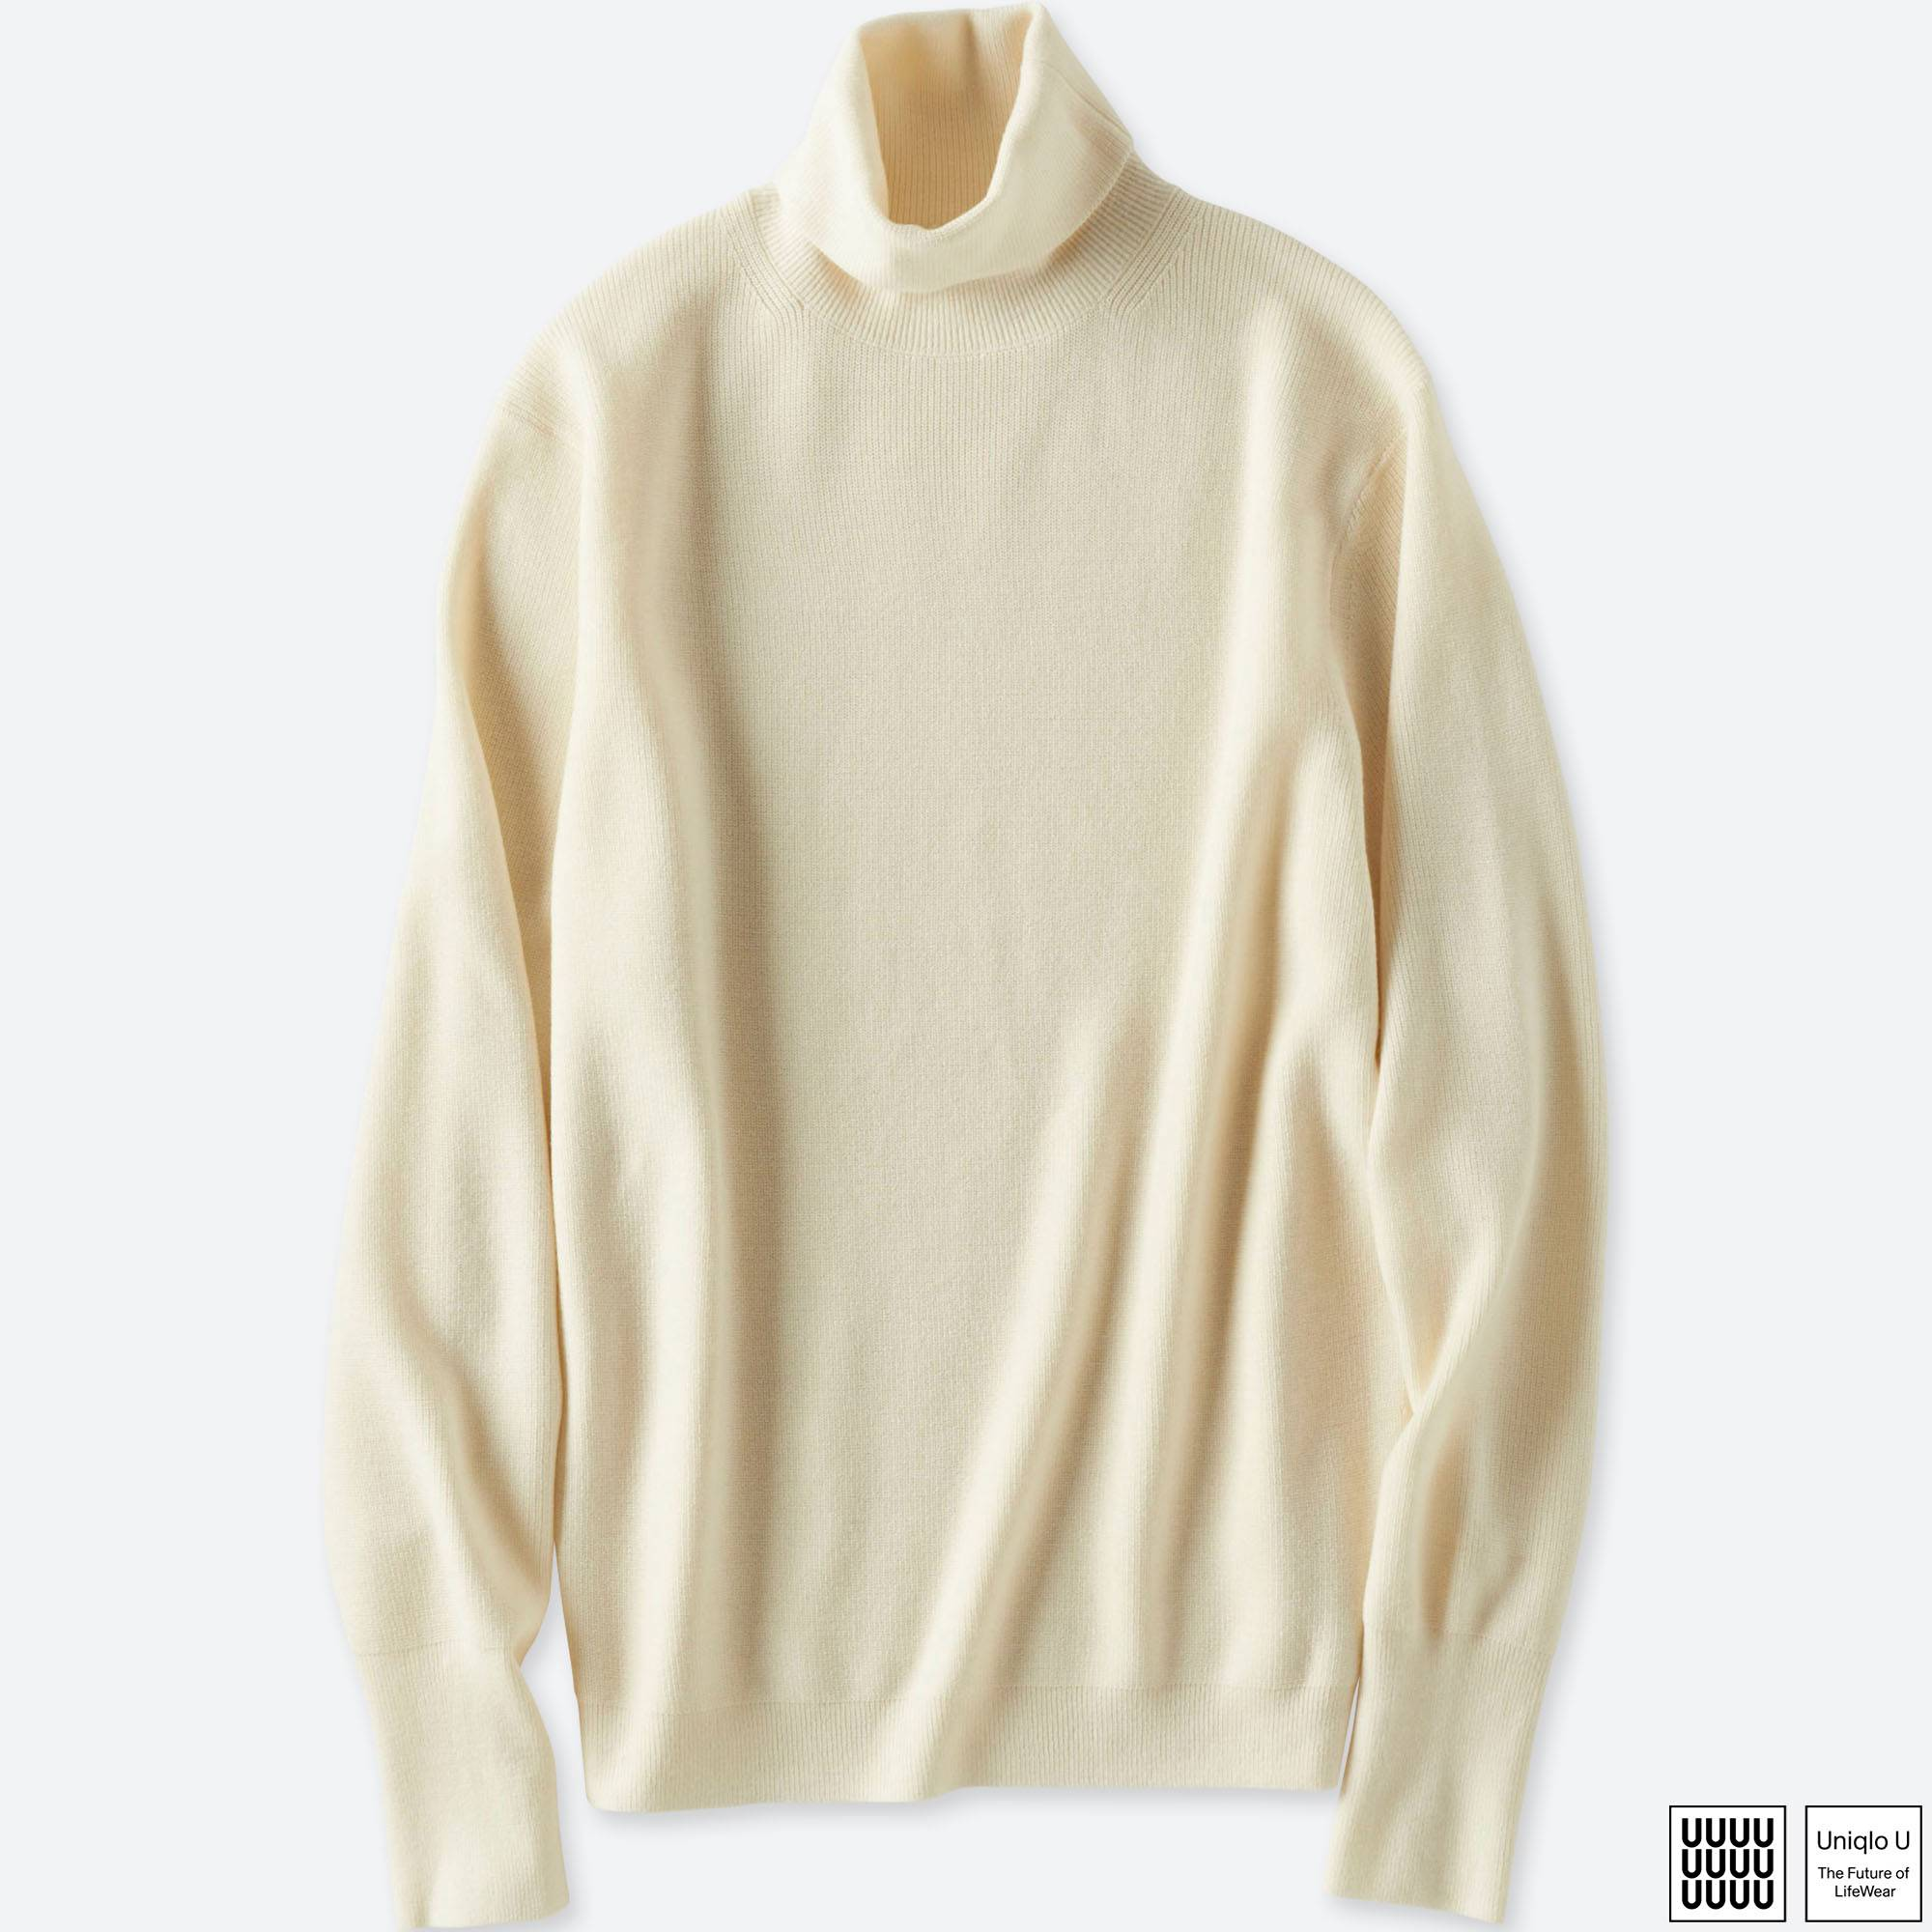 MEN U MERINO-BLEND TURTLENECK LONG-SLEEVE SWEATER | UNIQLO US